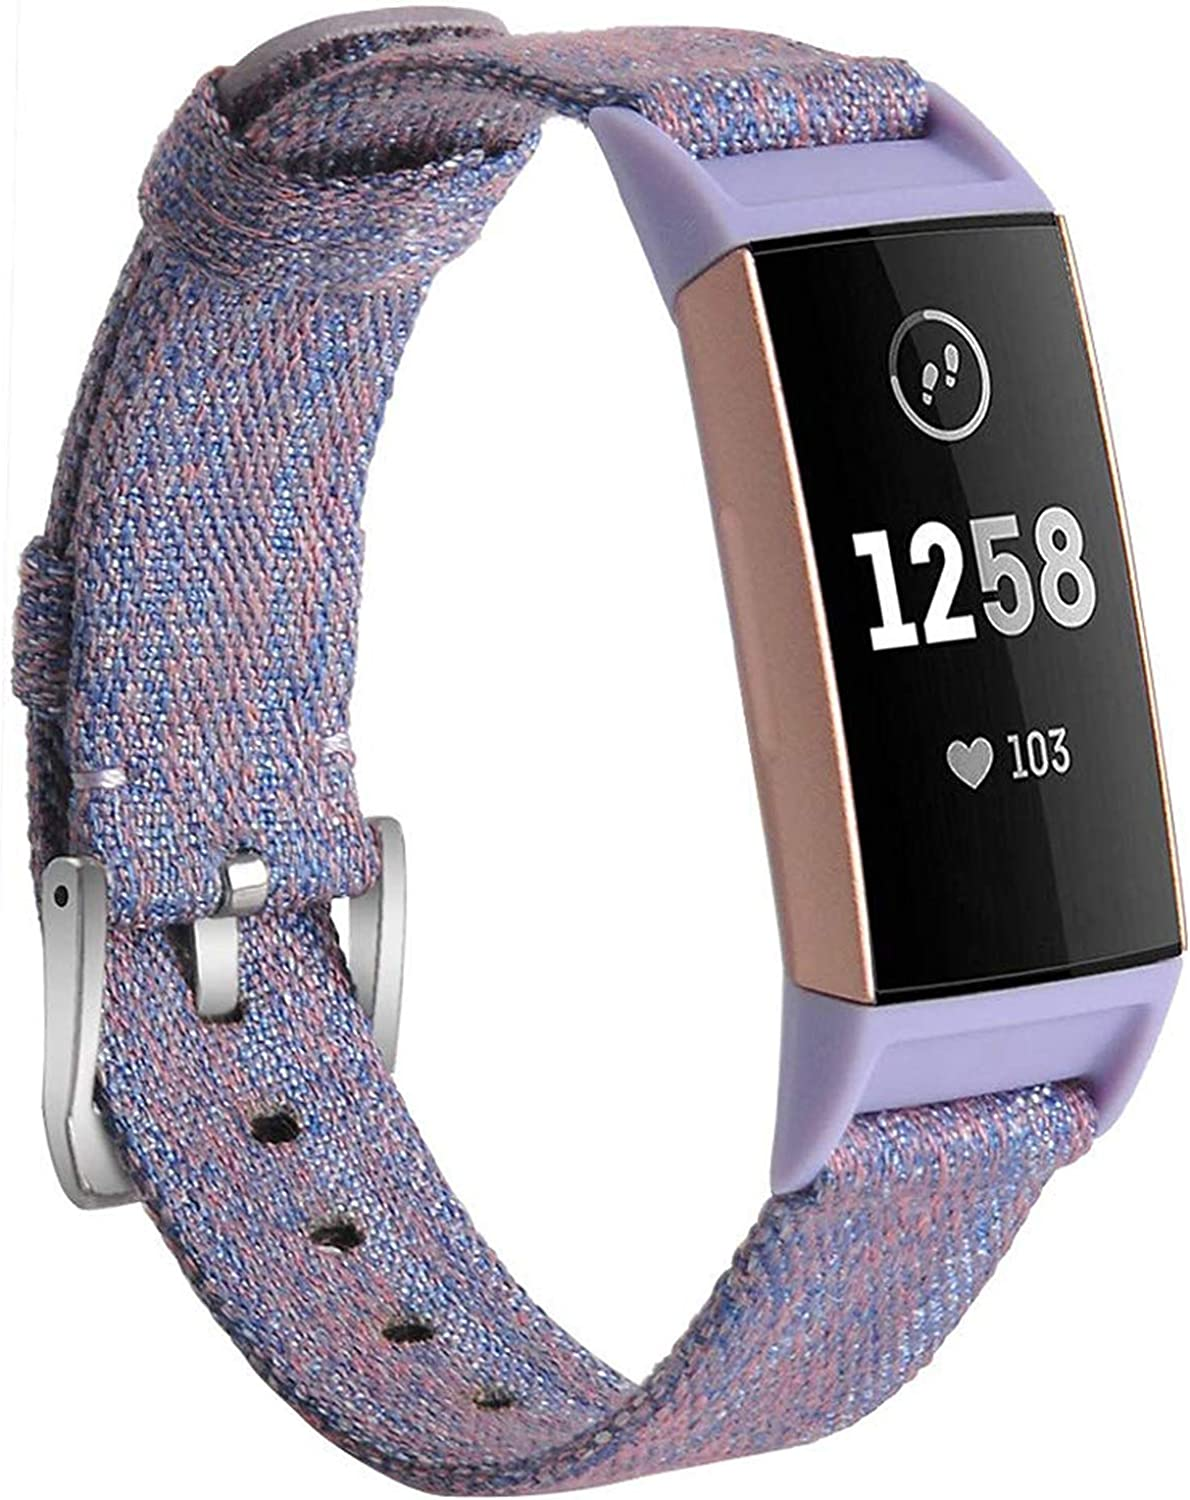 hooroor Canvas Woven Band Compatible for Fitbit Charge 4 / Charge 3 Bands and Charge 3 SE Band, Soft Breathable Fabric Cloth Replacement Wristbands Sports Accessories Small Large for Women Men